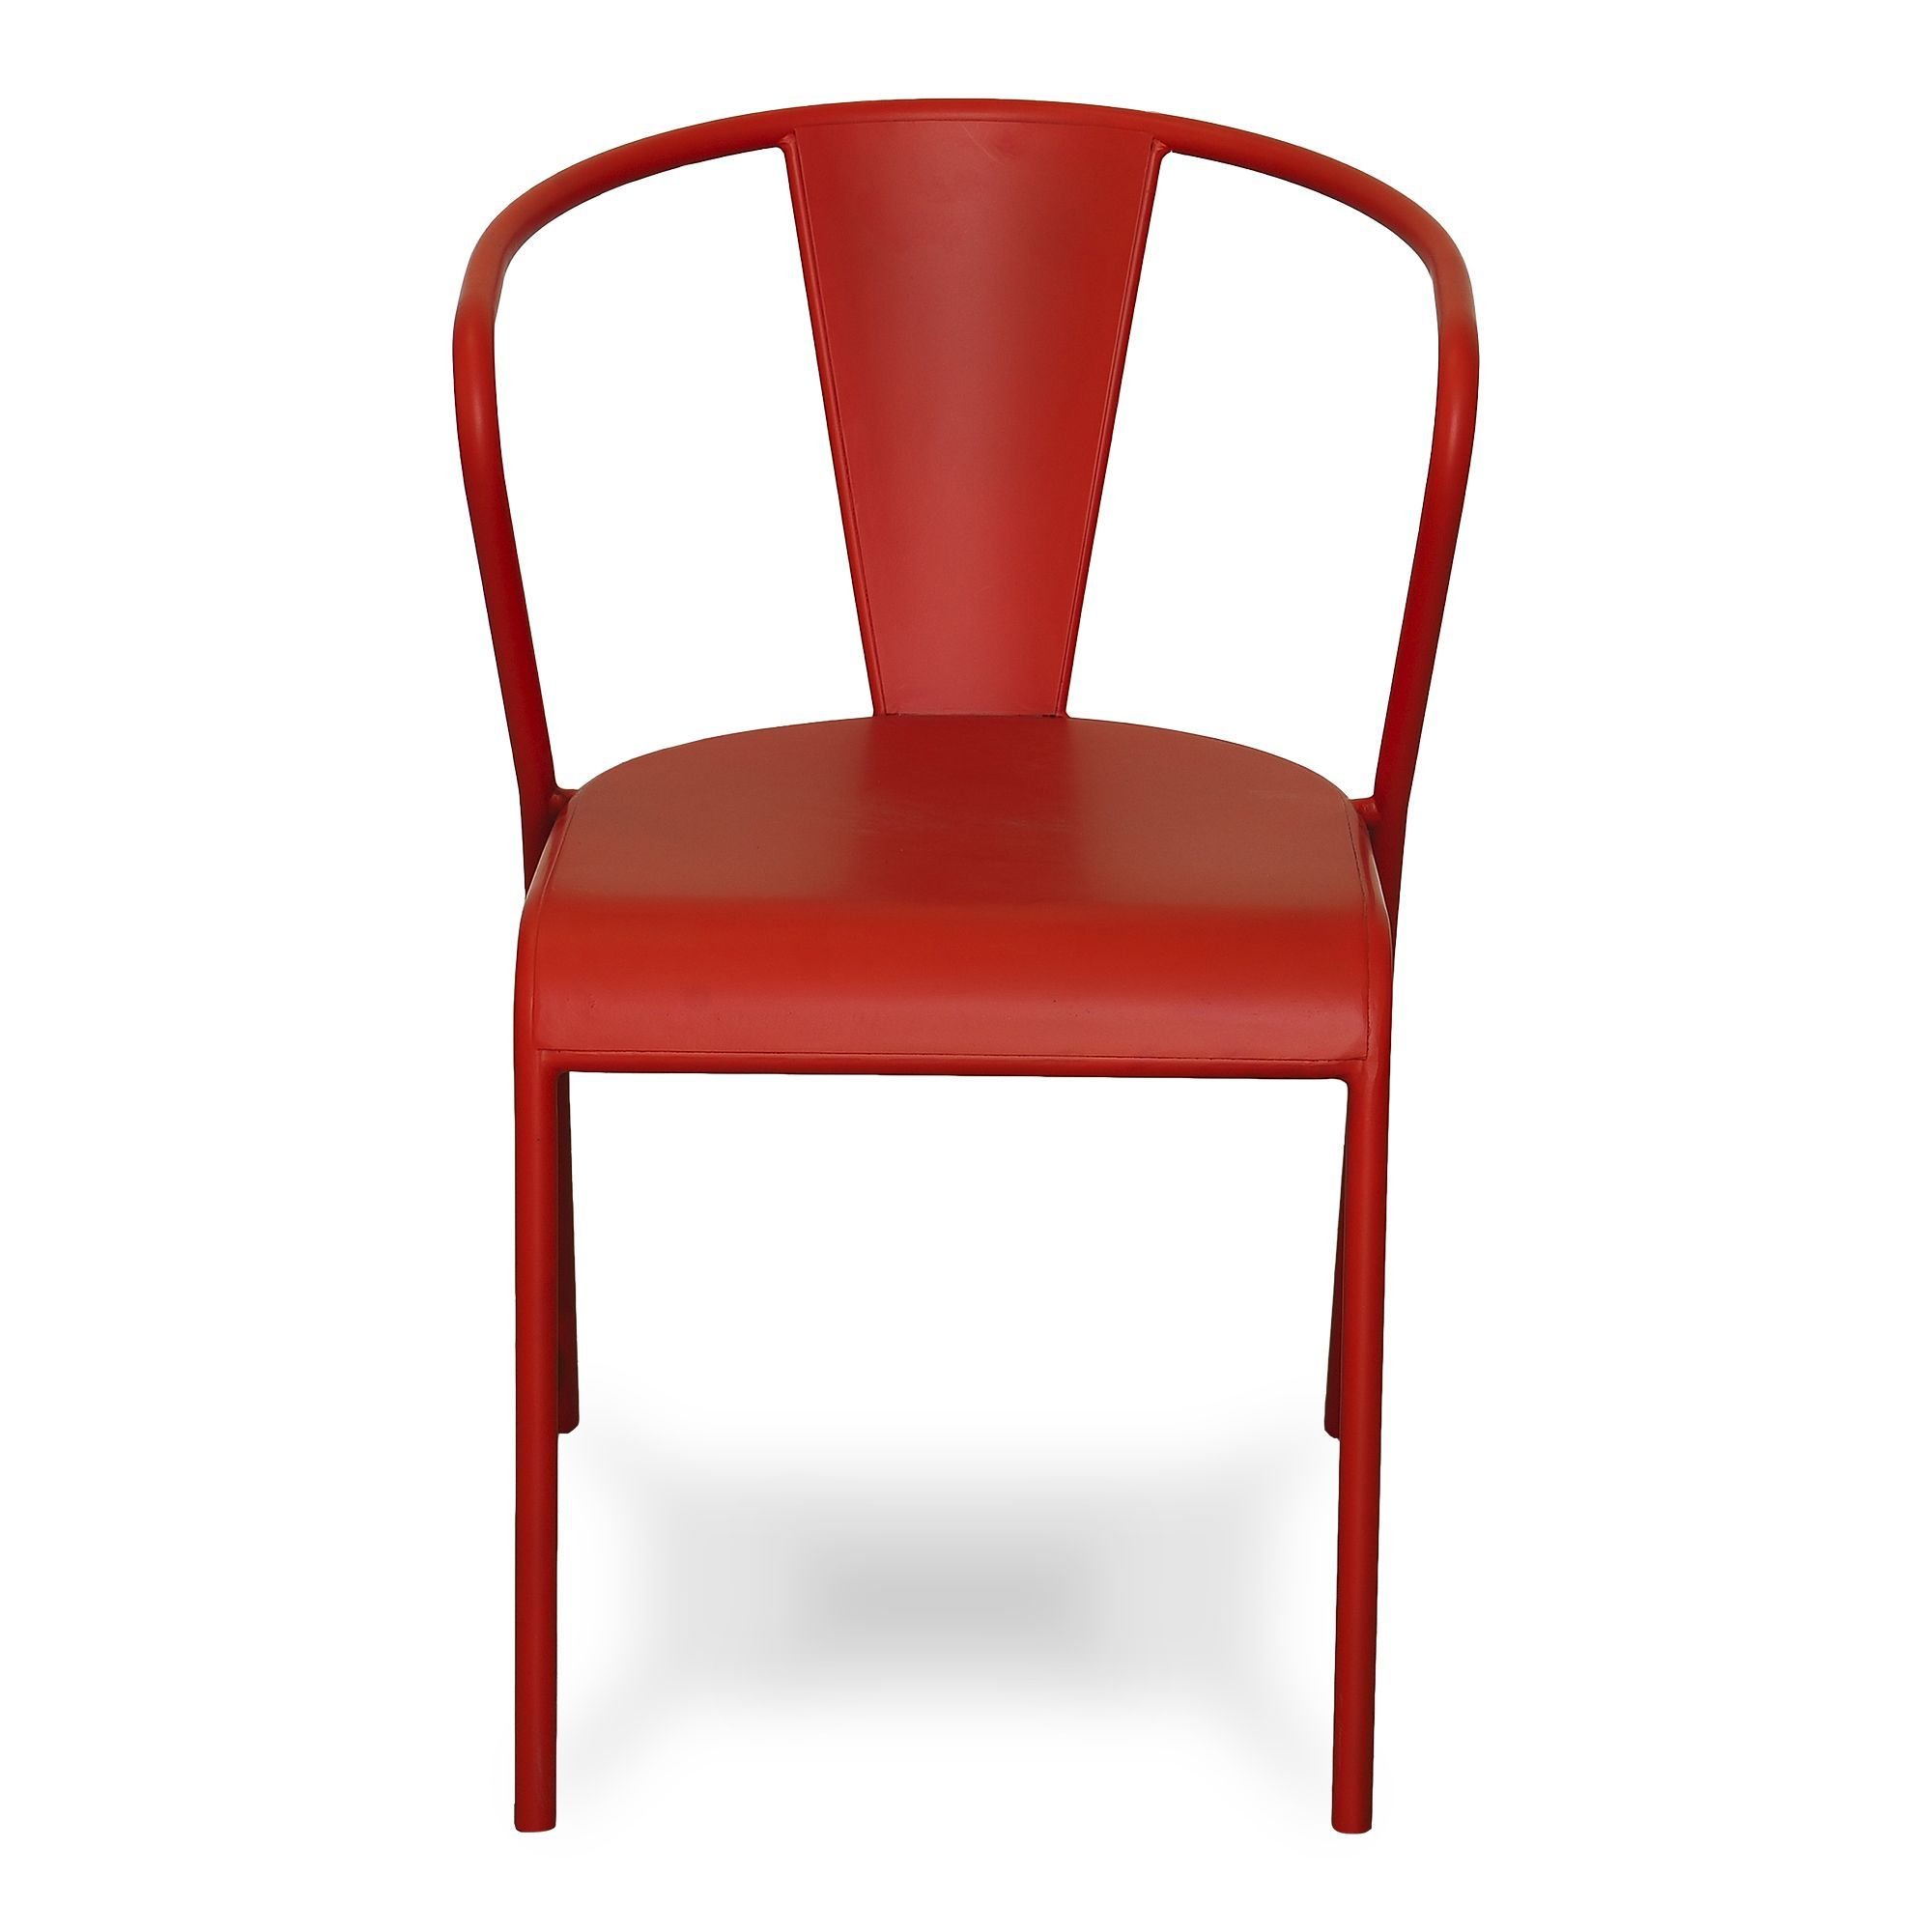 chaise rouge en acier design rouge akaros chaises tables et chaises salon - Table Et Chaise Design